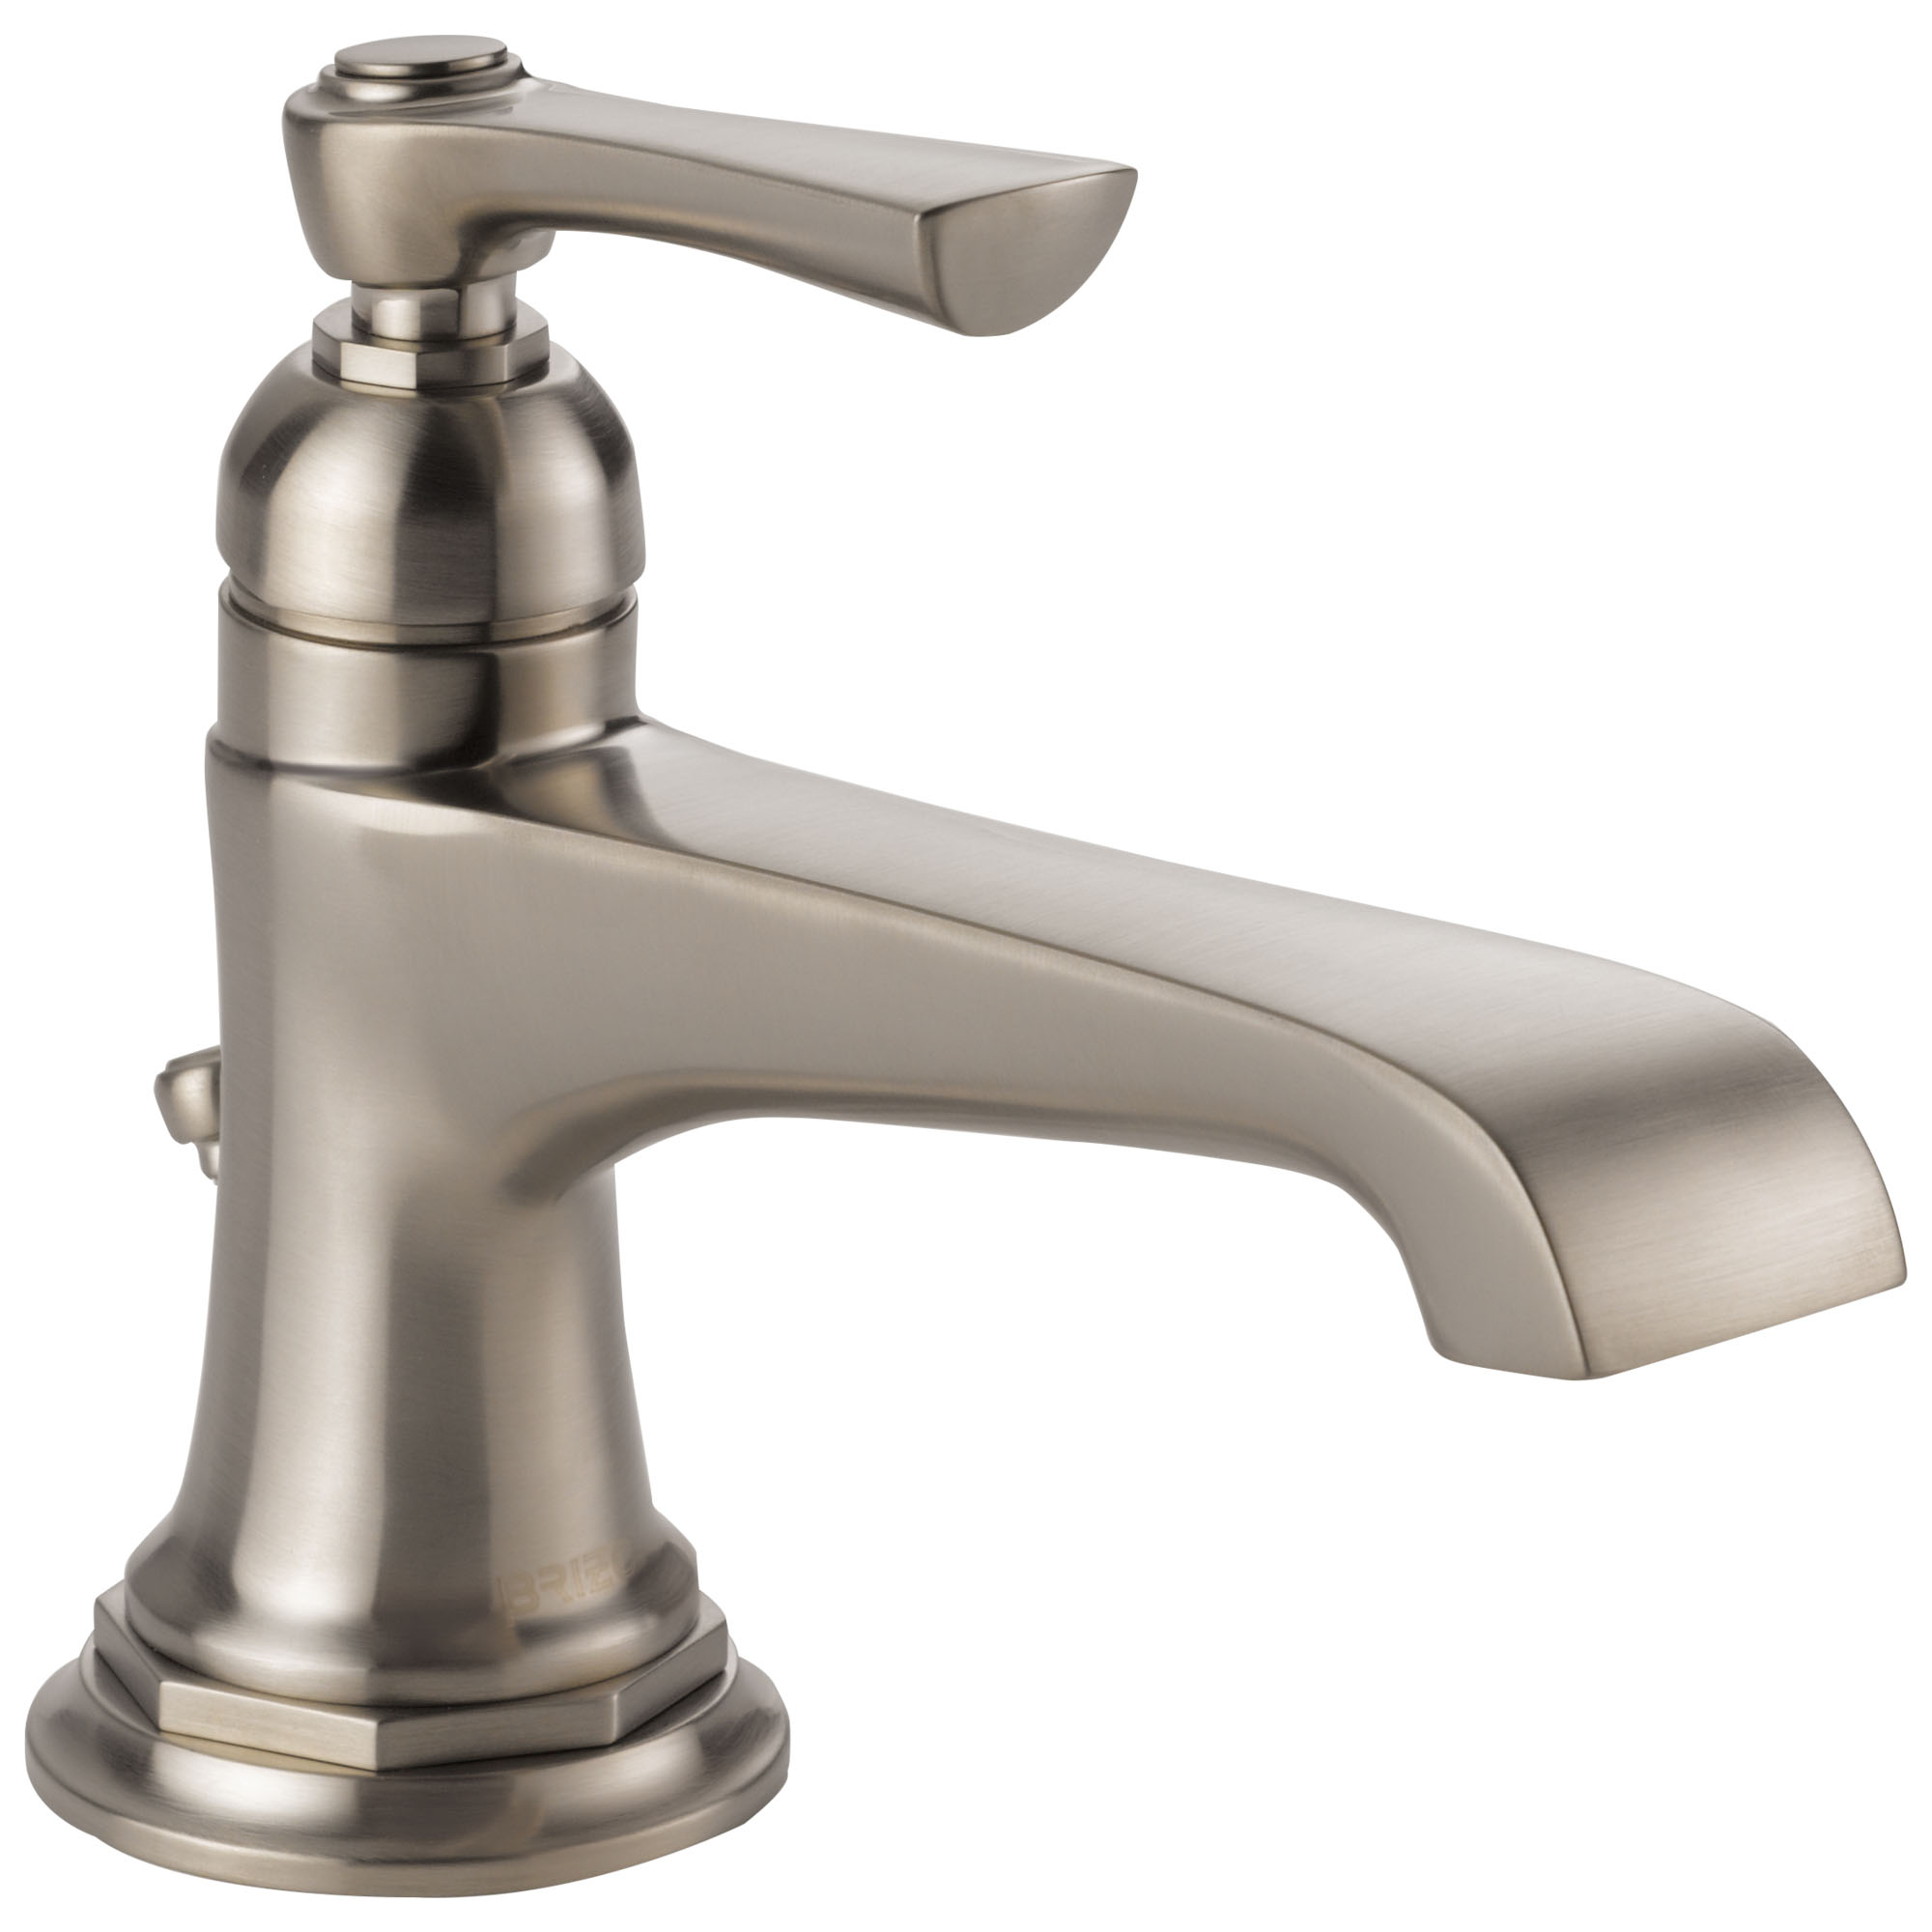 Brizo 65060LF-NK Rook Single Handle Single Hole Lavatory Faucet - Luxe Nickel